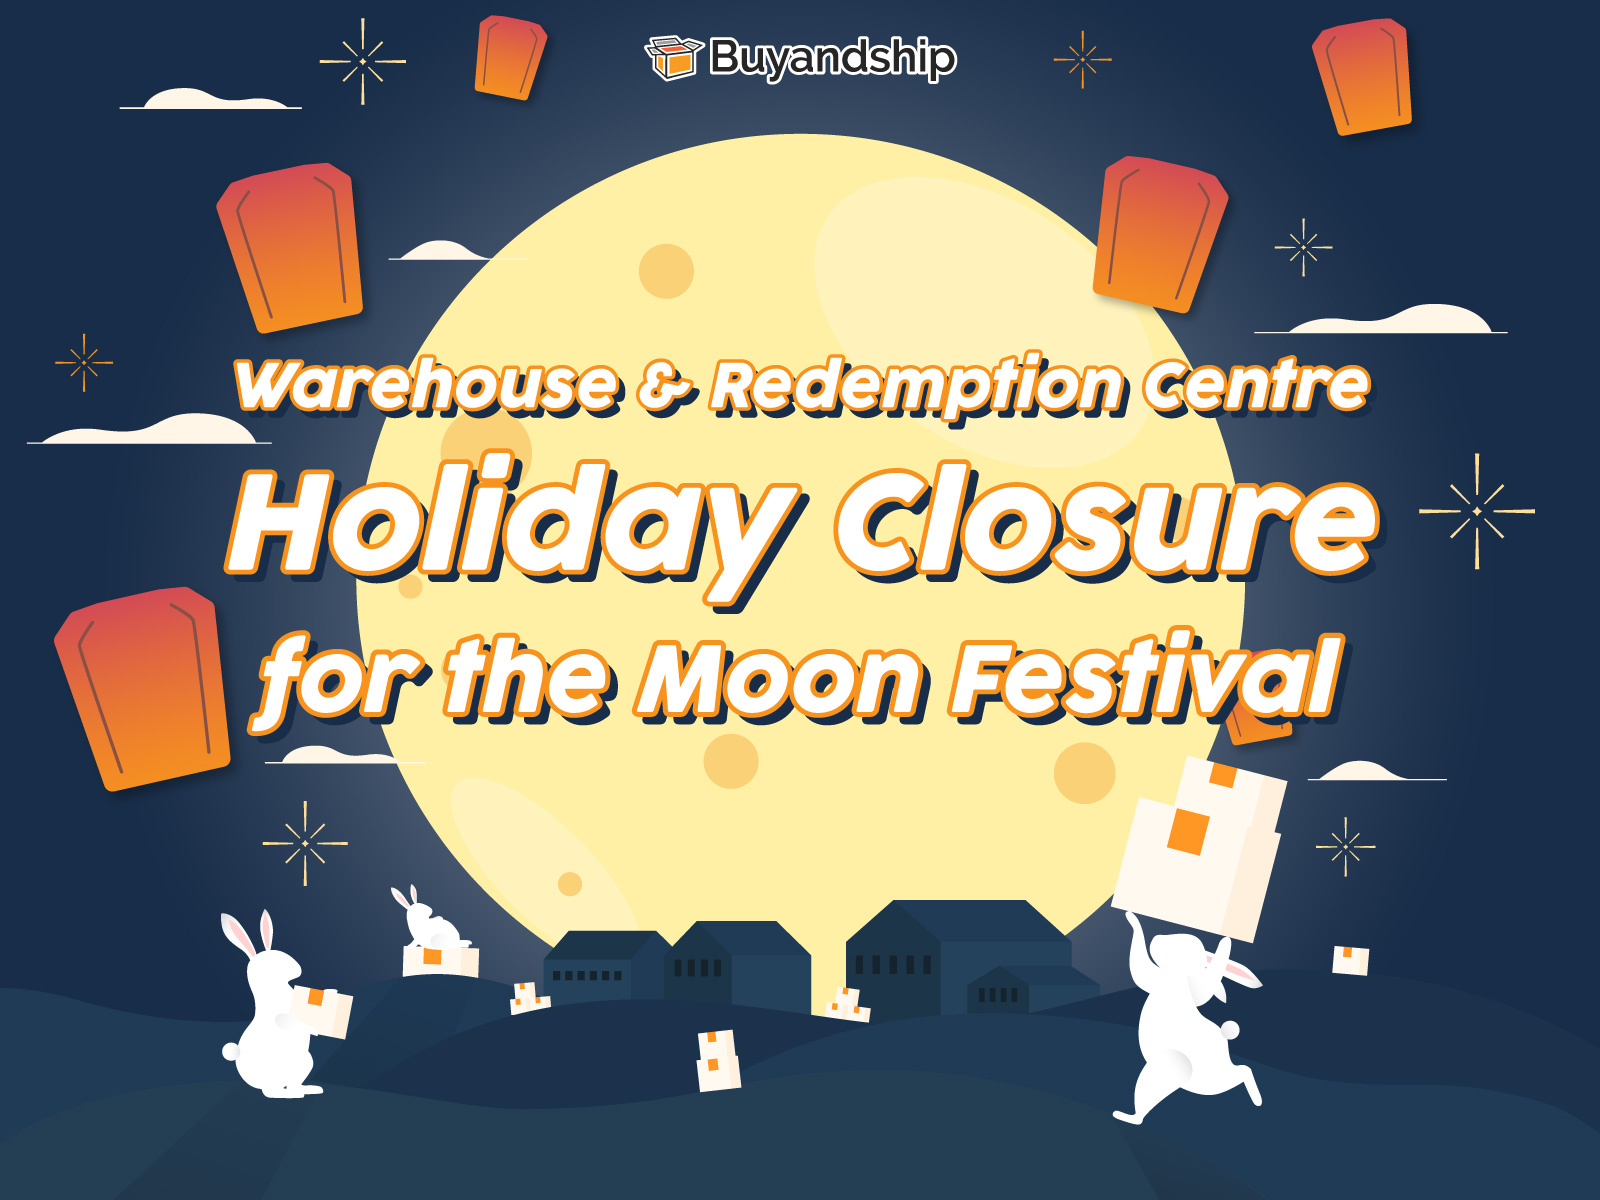 Warehouse & Redemption Centre: Holiday Closure for the Mid-Autumn Festival